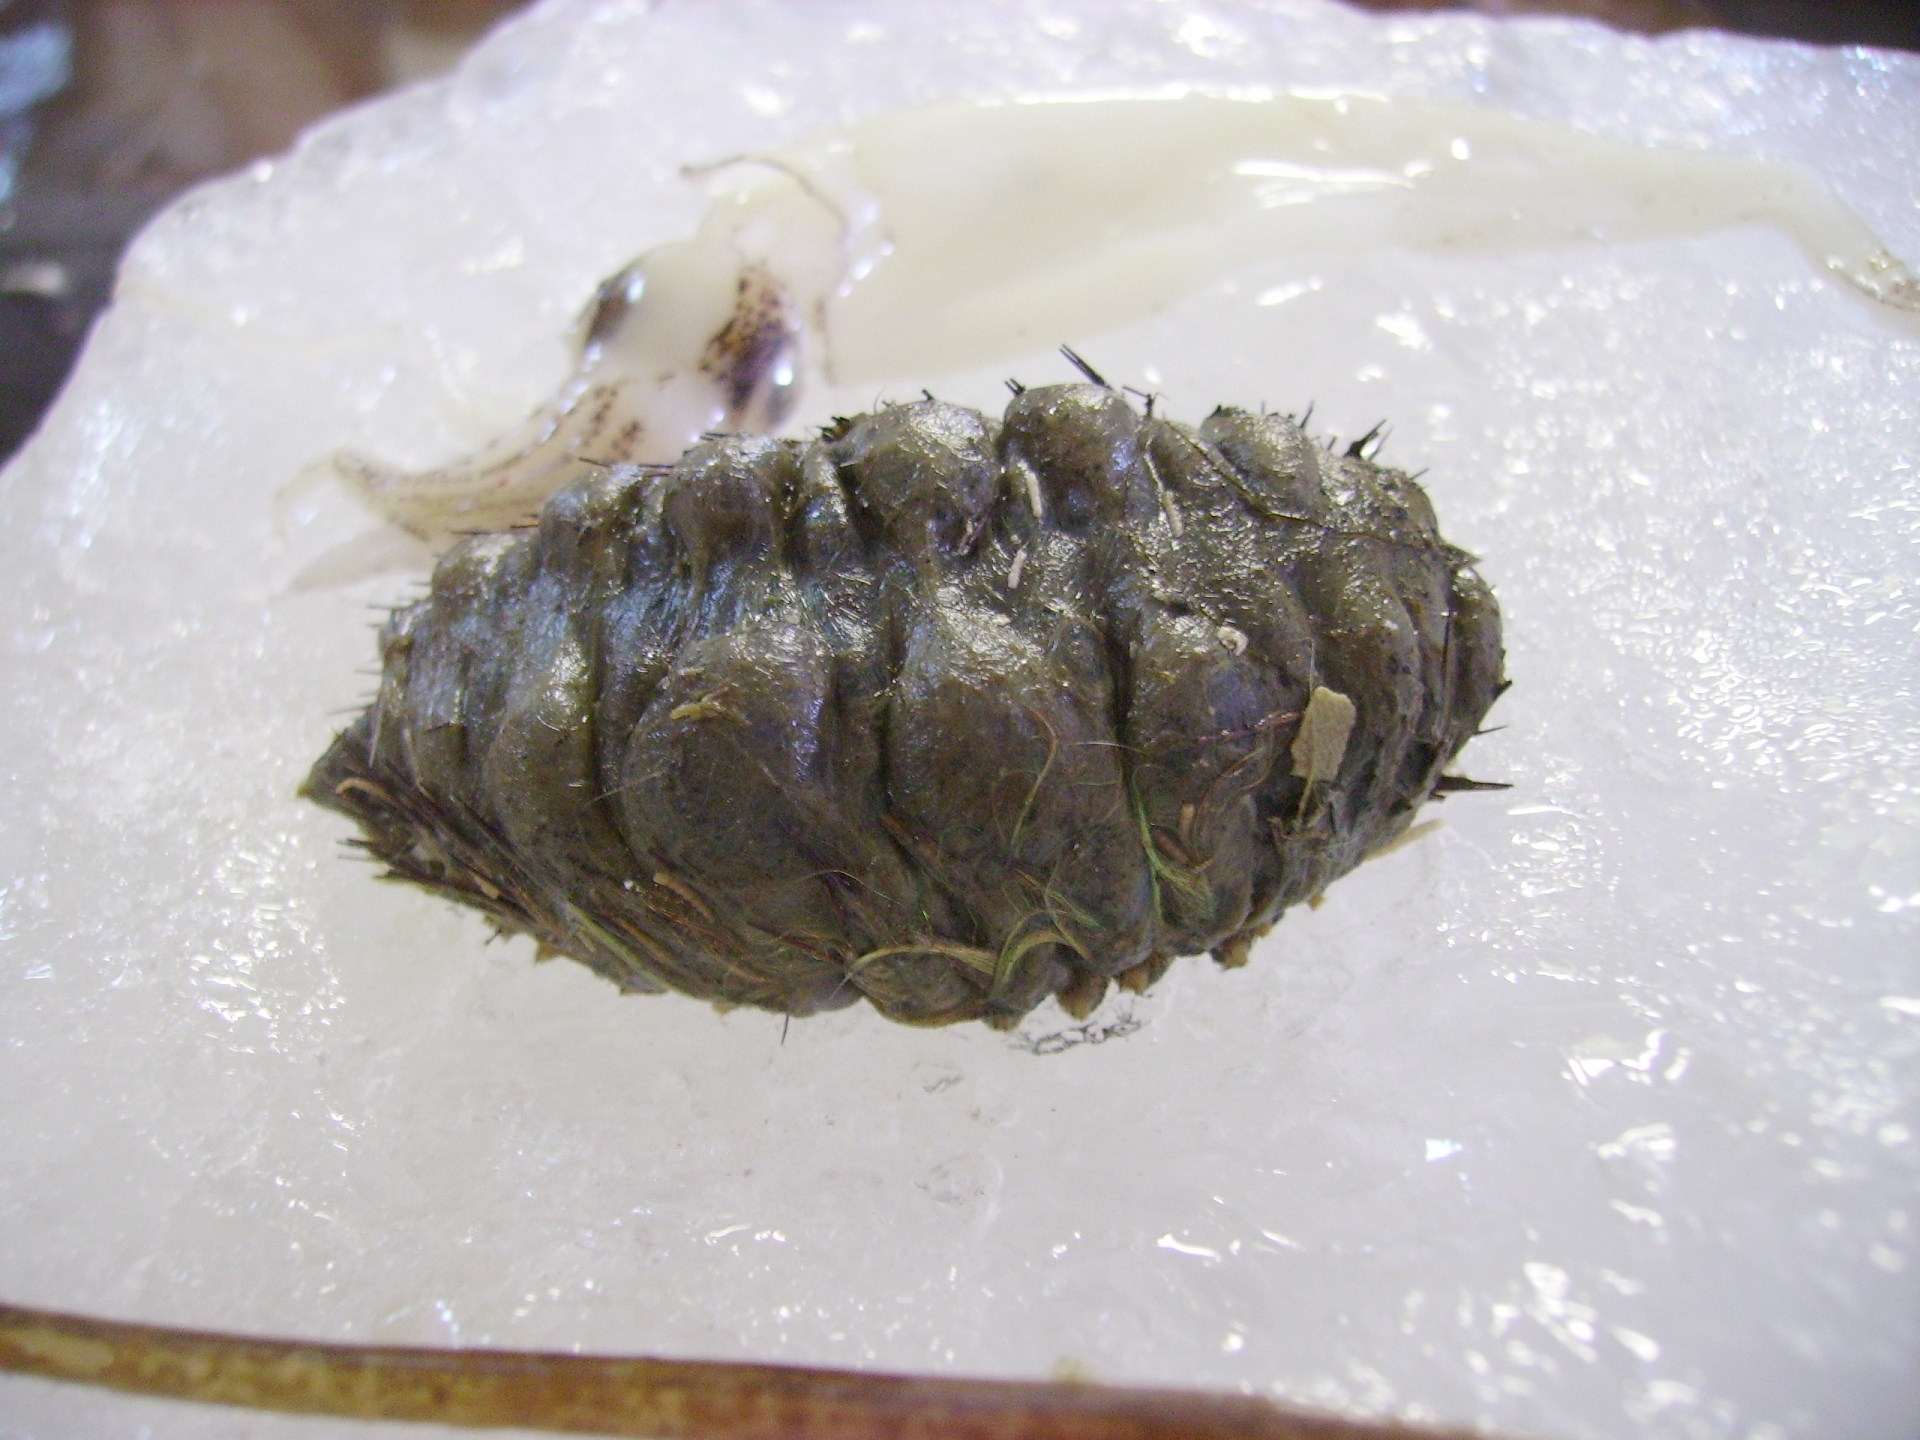 Image of Sea mouse